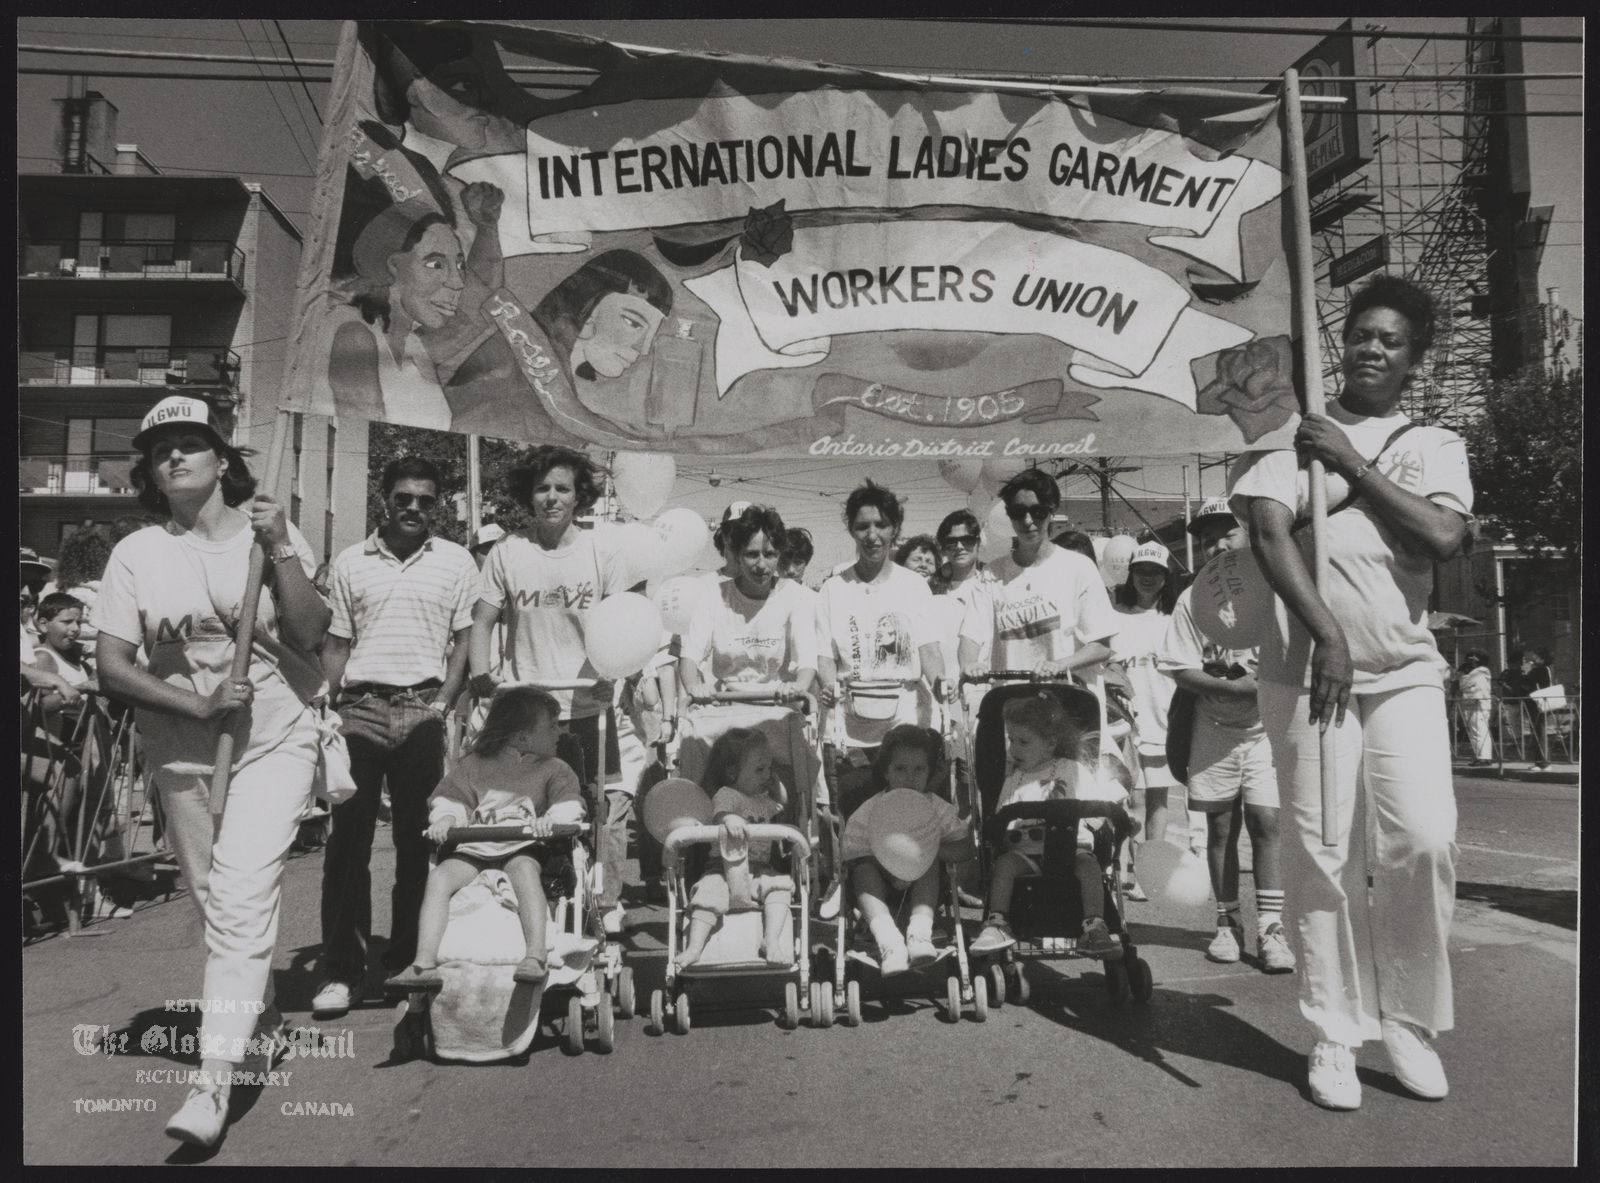 C.N.E. Labor Parade Members of the International Ladies Garment Workers Union march toward the Canadian National Exhibition in Toronto in the annual Labor Day parade.